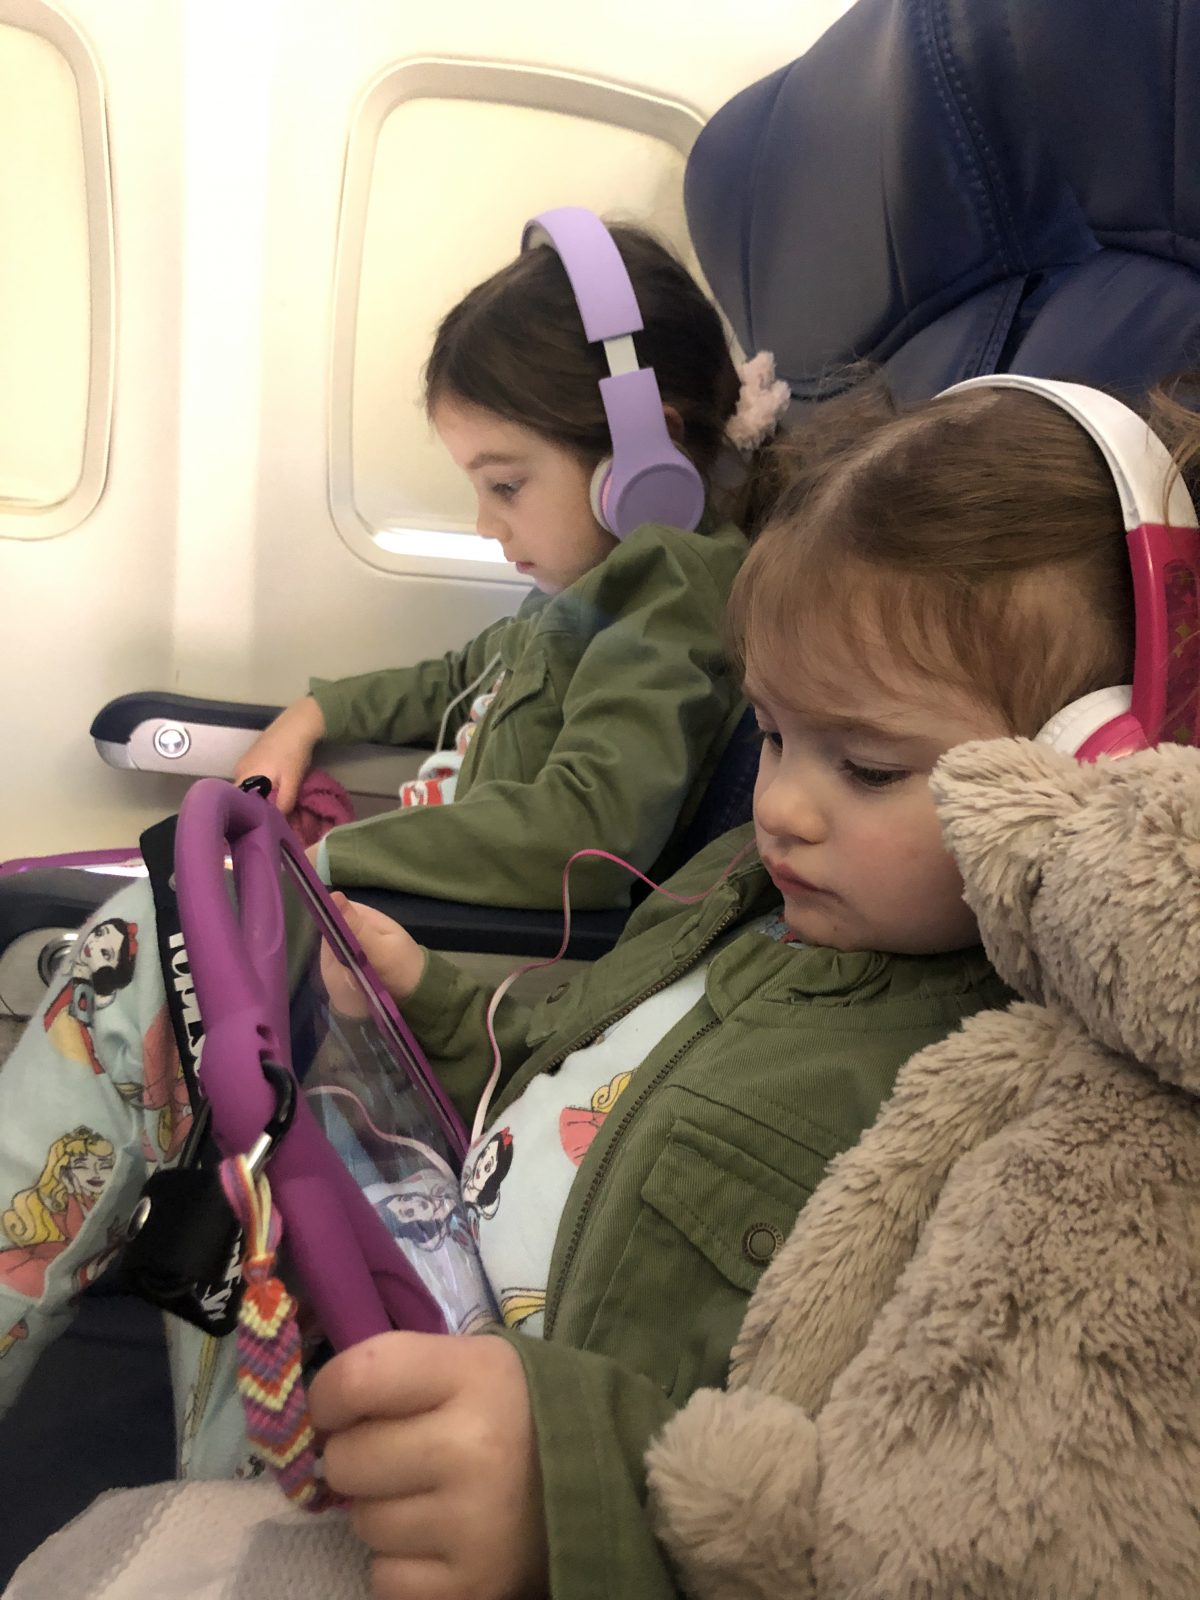 Toddlers wearing headphones and watching ipads on a plane